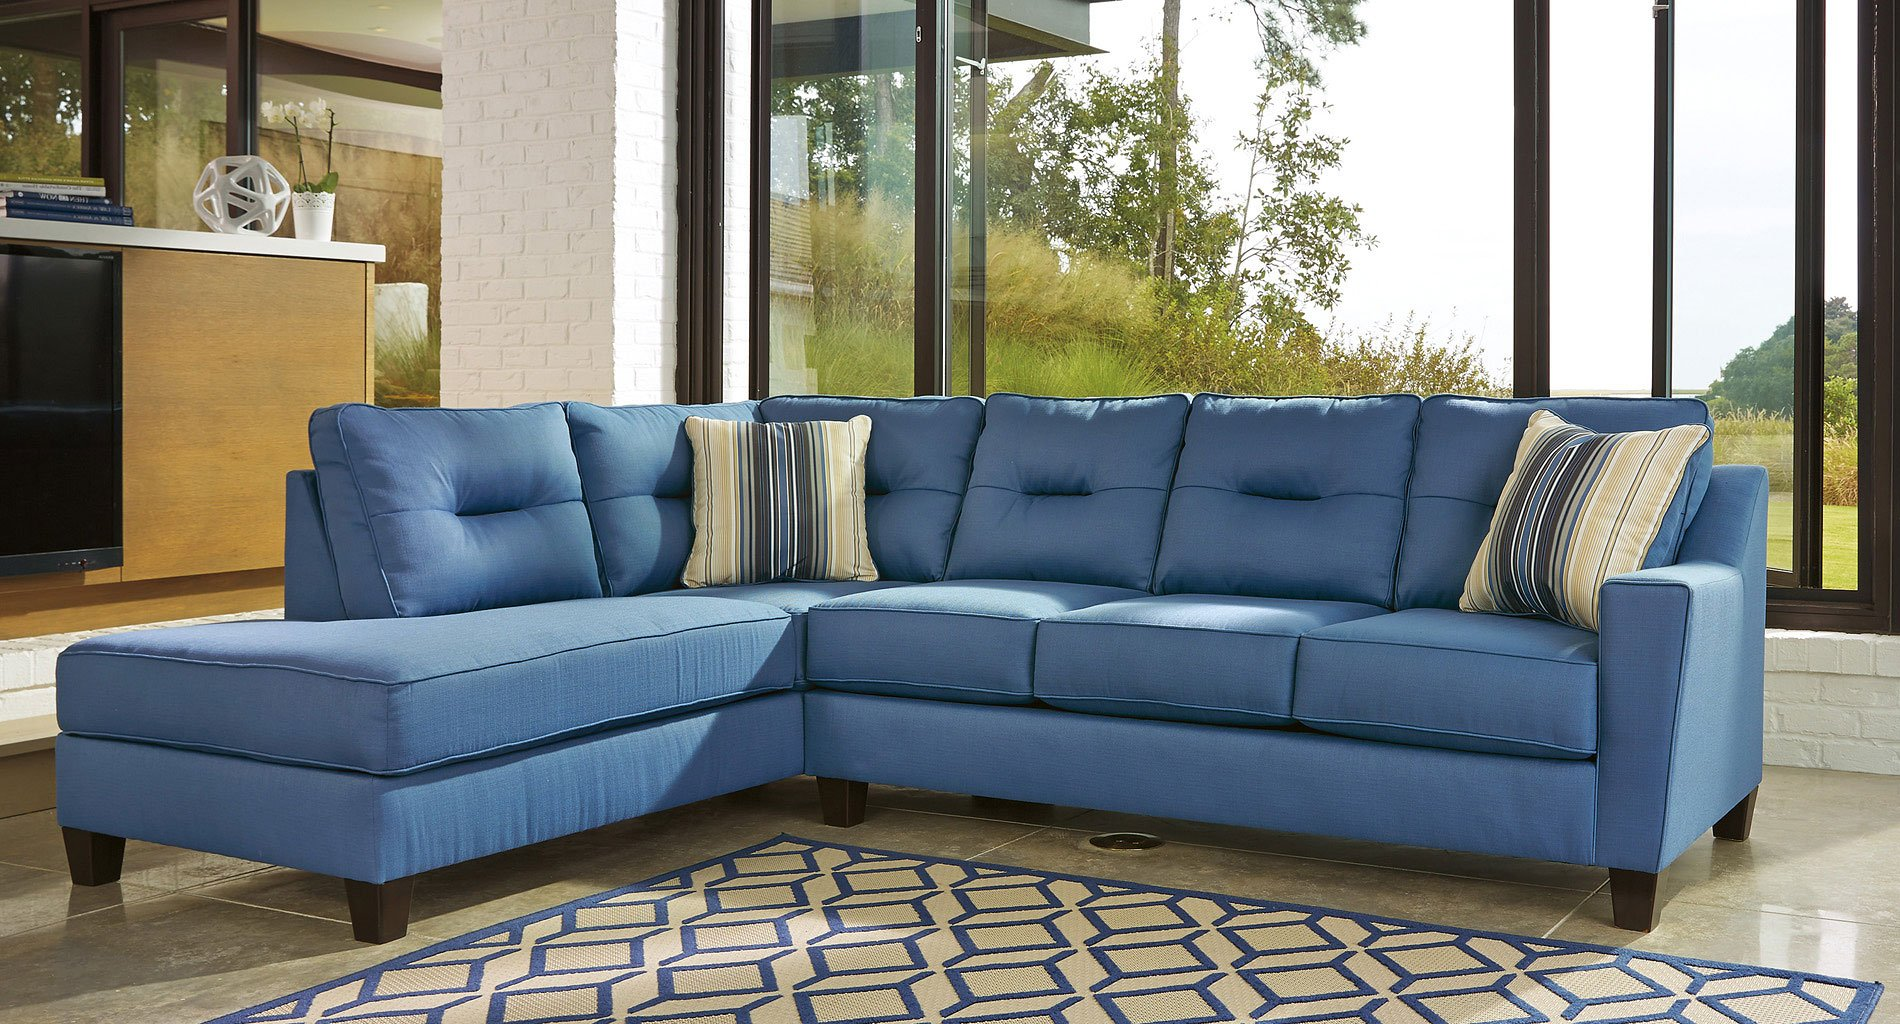 benchcraft sectional reviews kirwin nuvella blue left chaise sectional benchcraft 1 1583